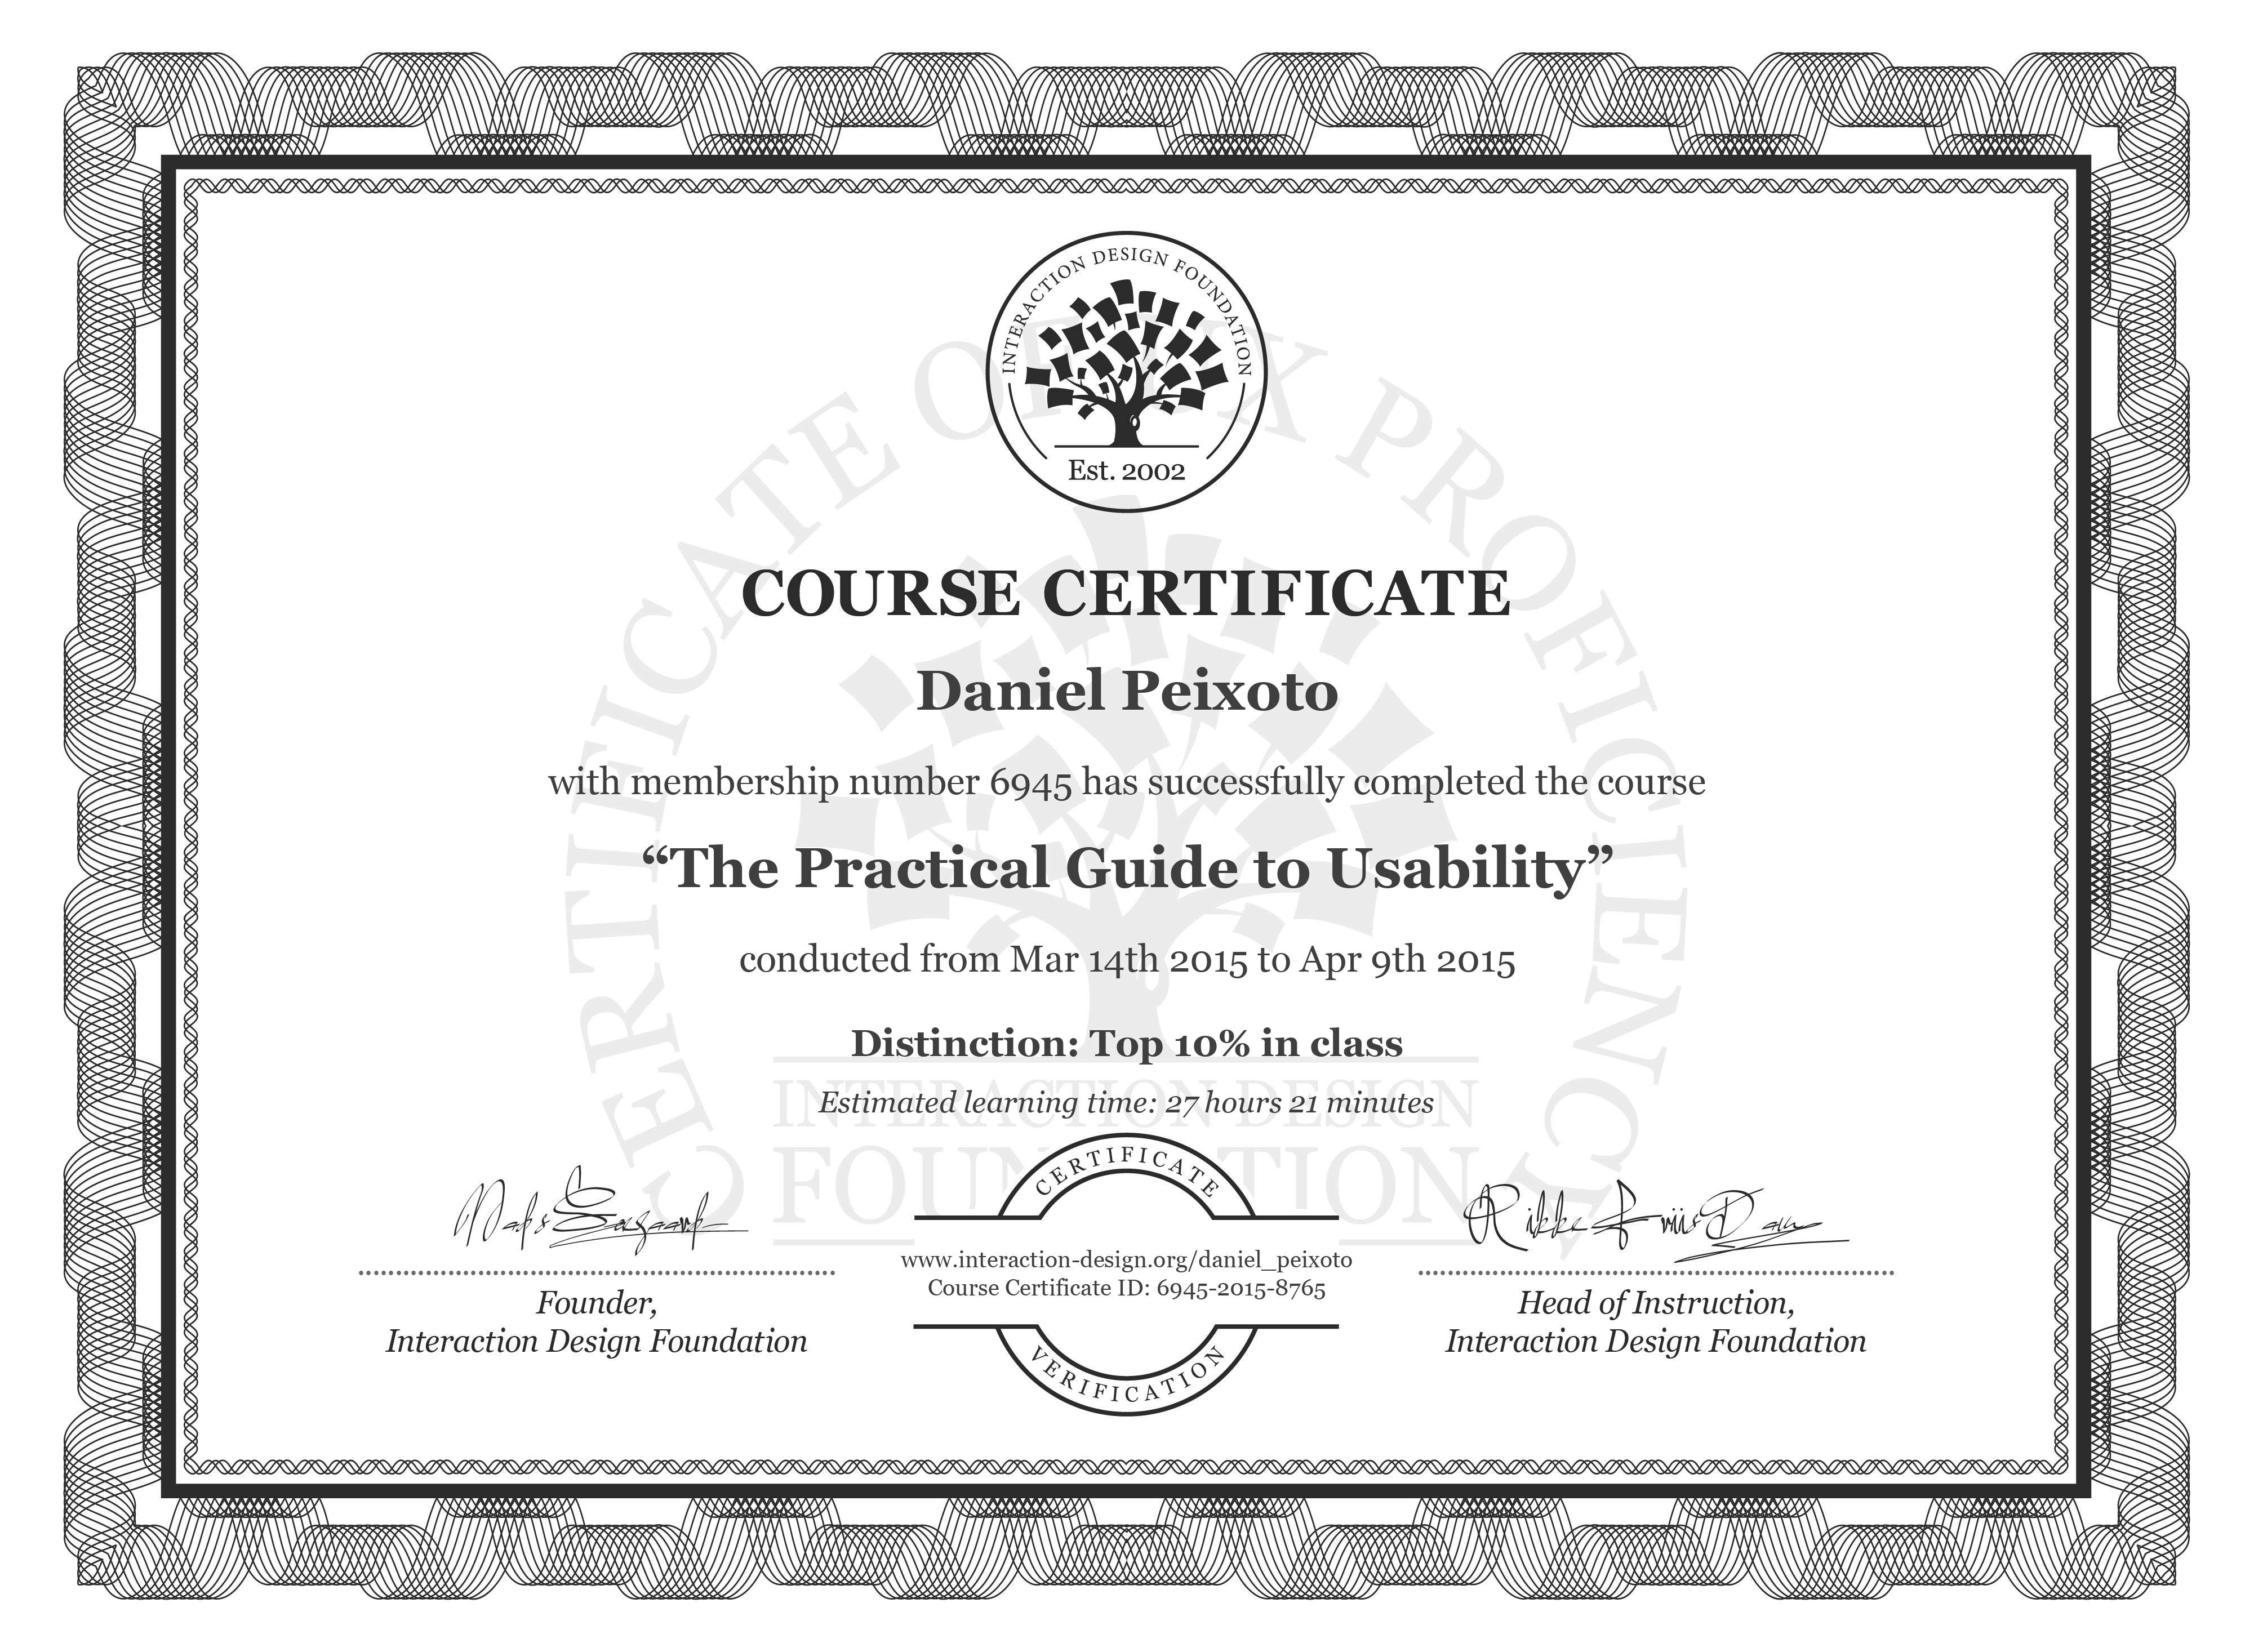 Daniel Peixoto: Course Certificate - The Practical Guide to Usability